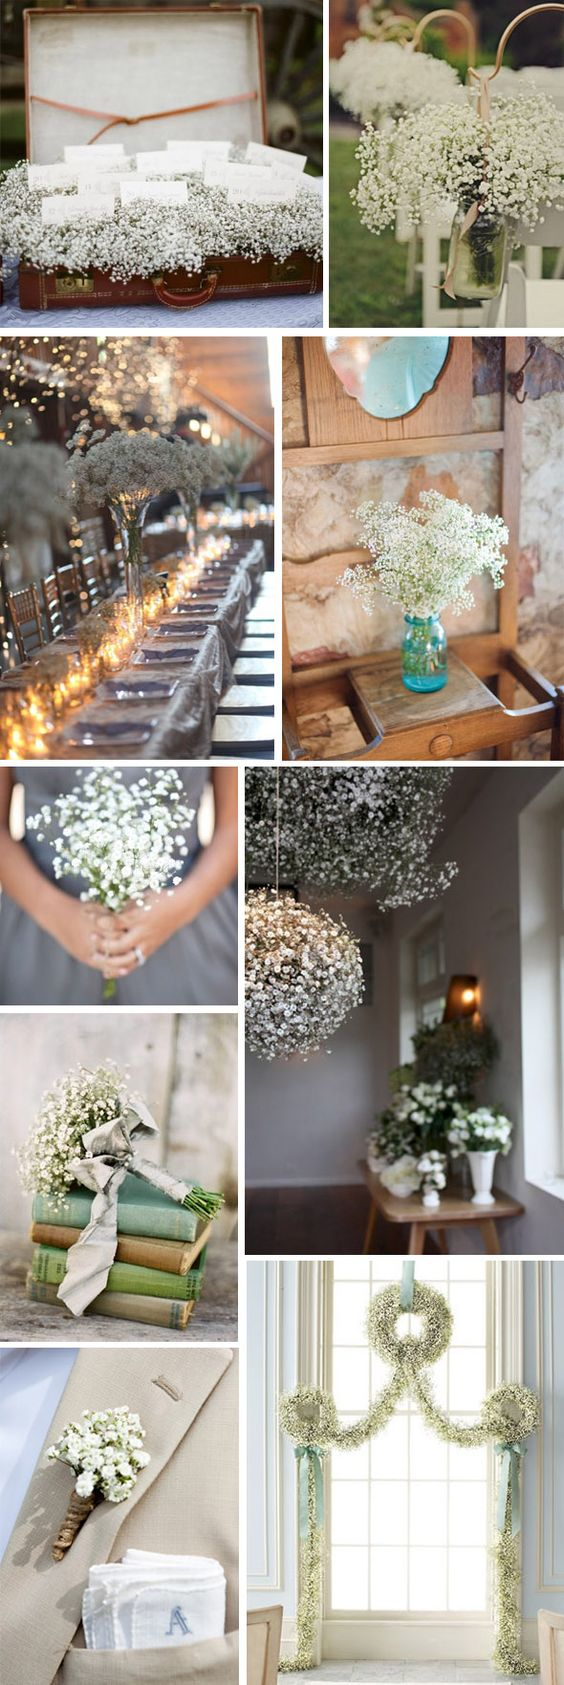 babys breath weddings: